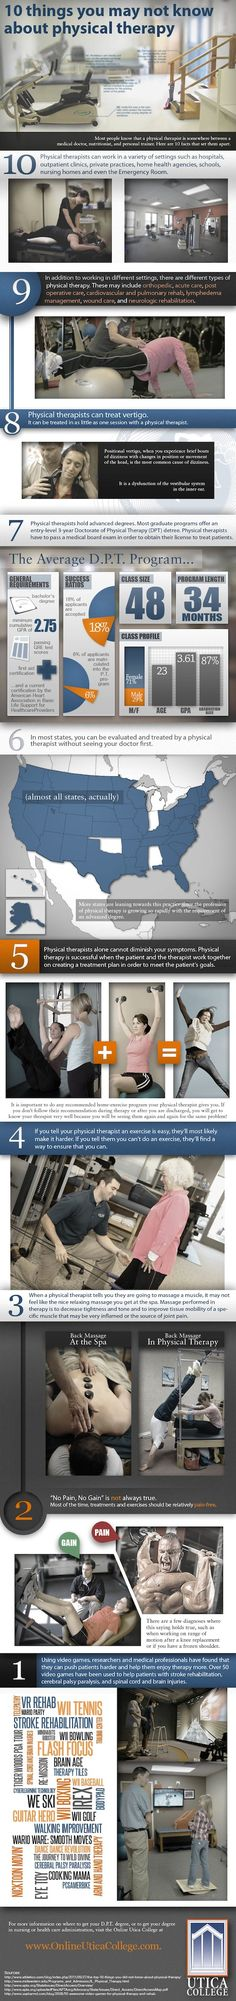 an infographic that illustrates 10 points that you may not know about physical therapy. Are you interested in becoming a physical therapist?